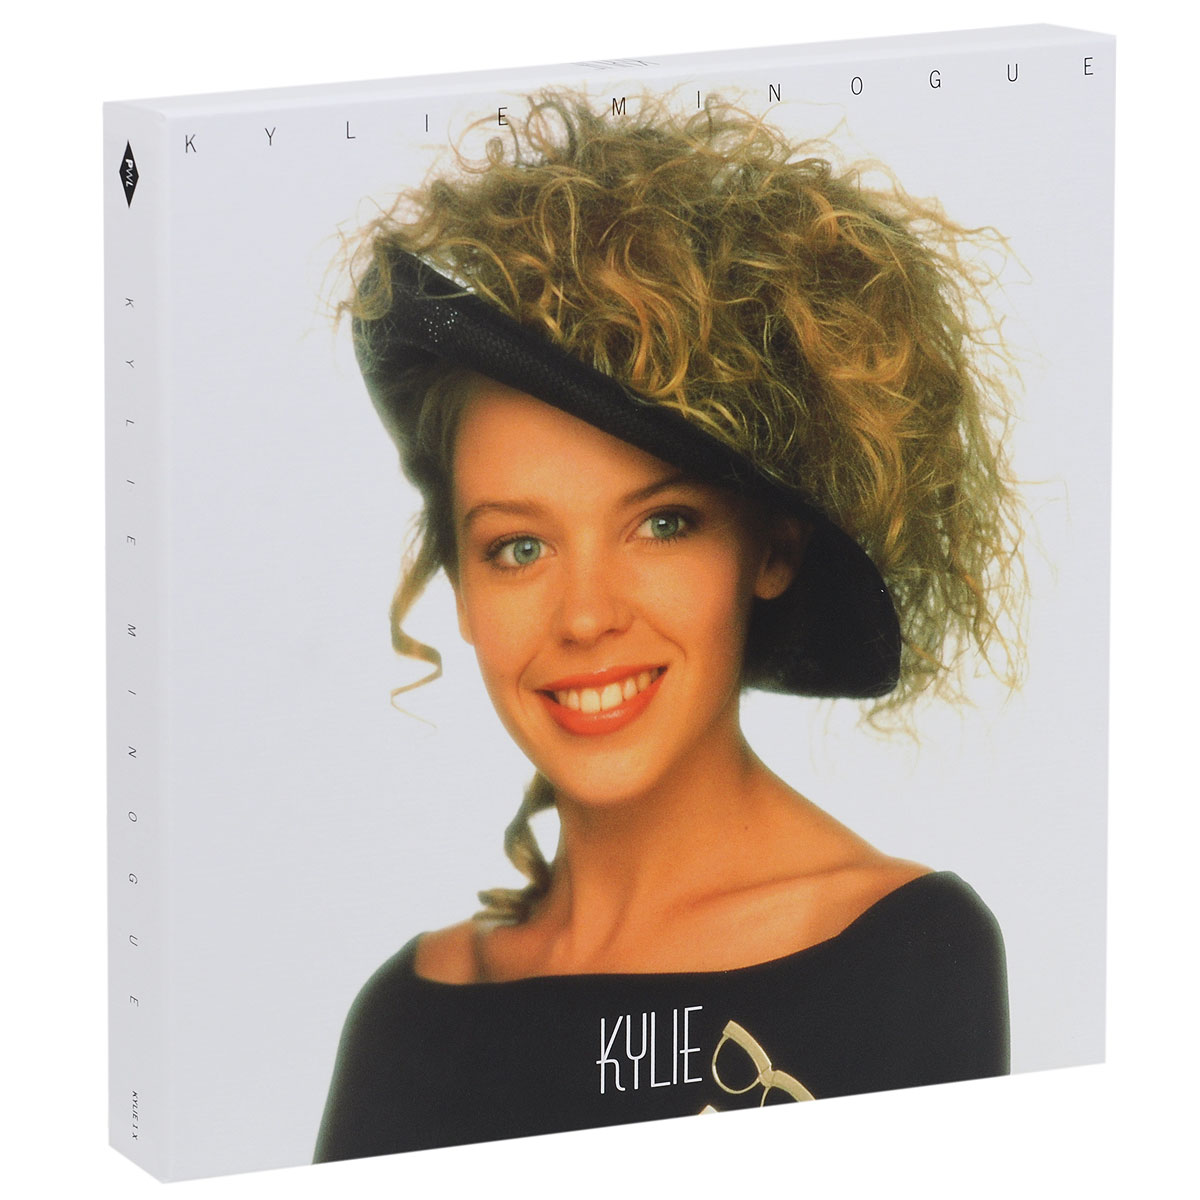 Кайли Миноуг Kylie Minogue. Kylie (2 CD + DVD + LP) the best of kylie minogue special edition cd dvd